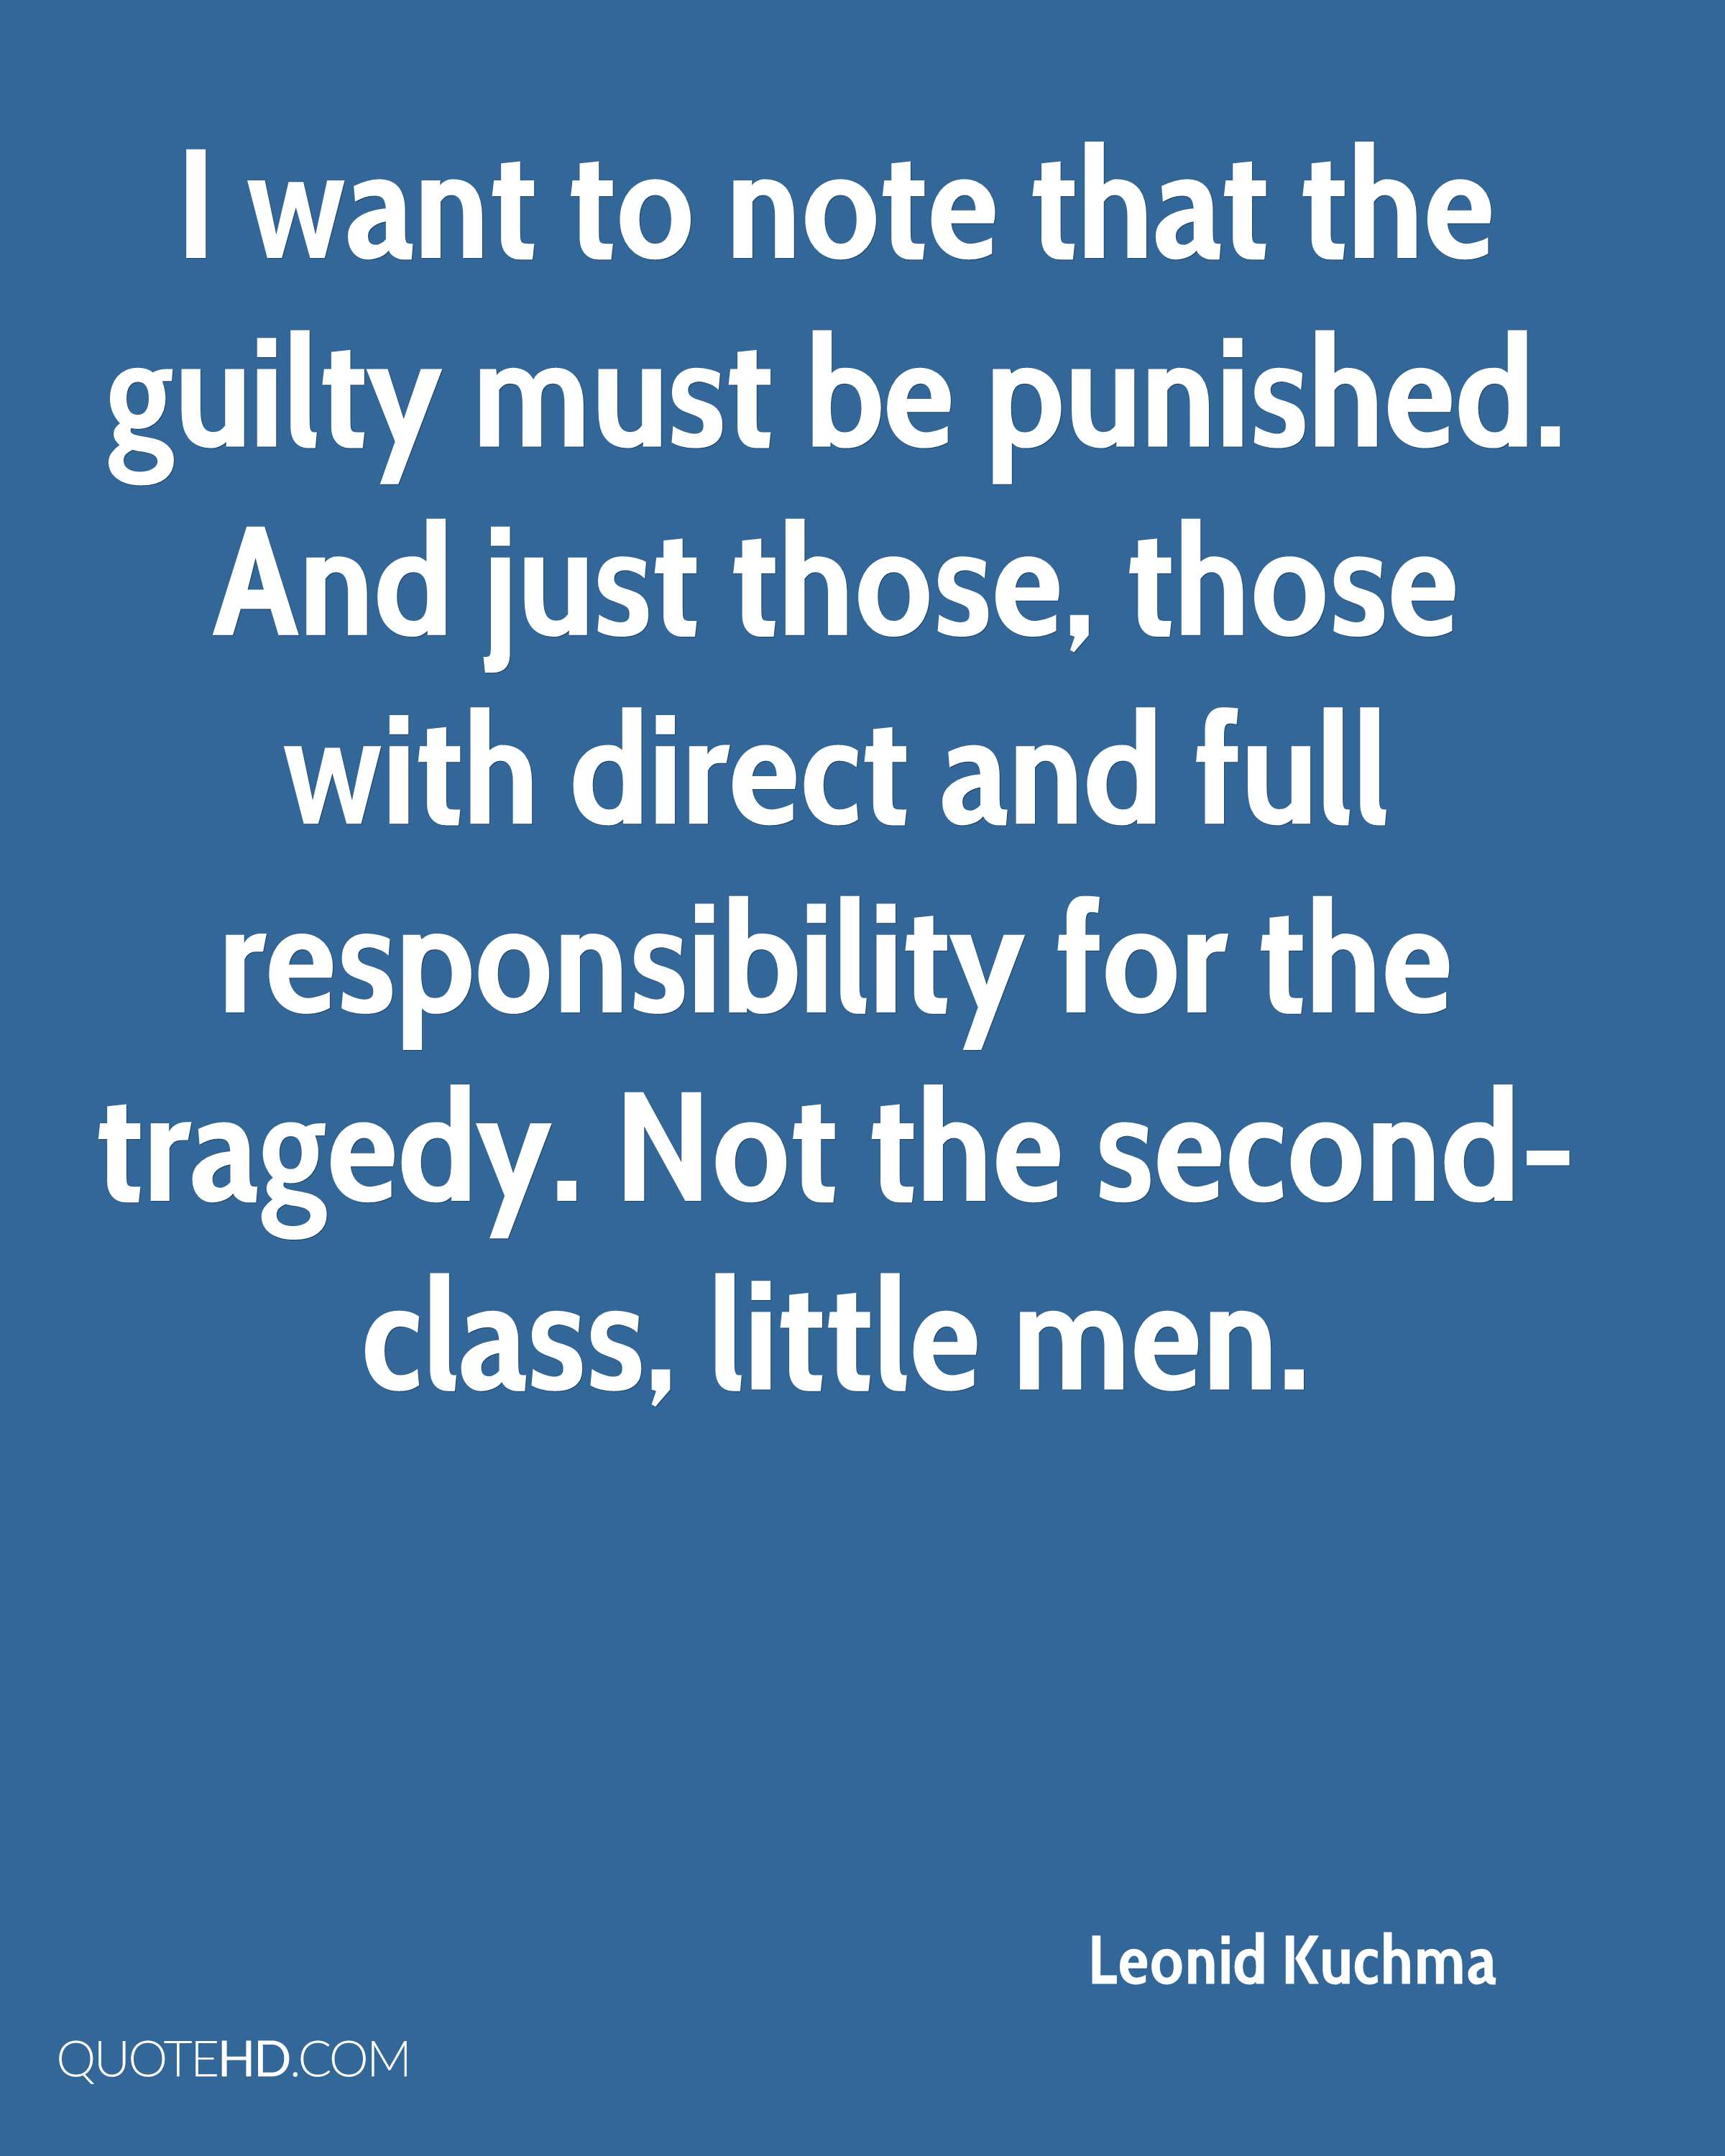 I want to note that the guilty must be punished. And just those, those with direct and full responsibility for the tragedy. Not the second-class, little men.